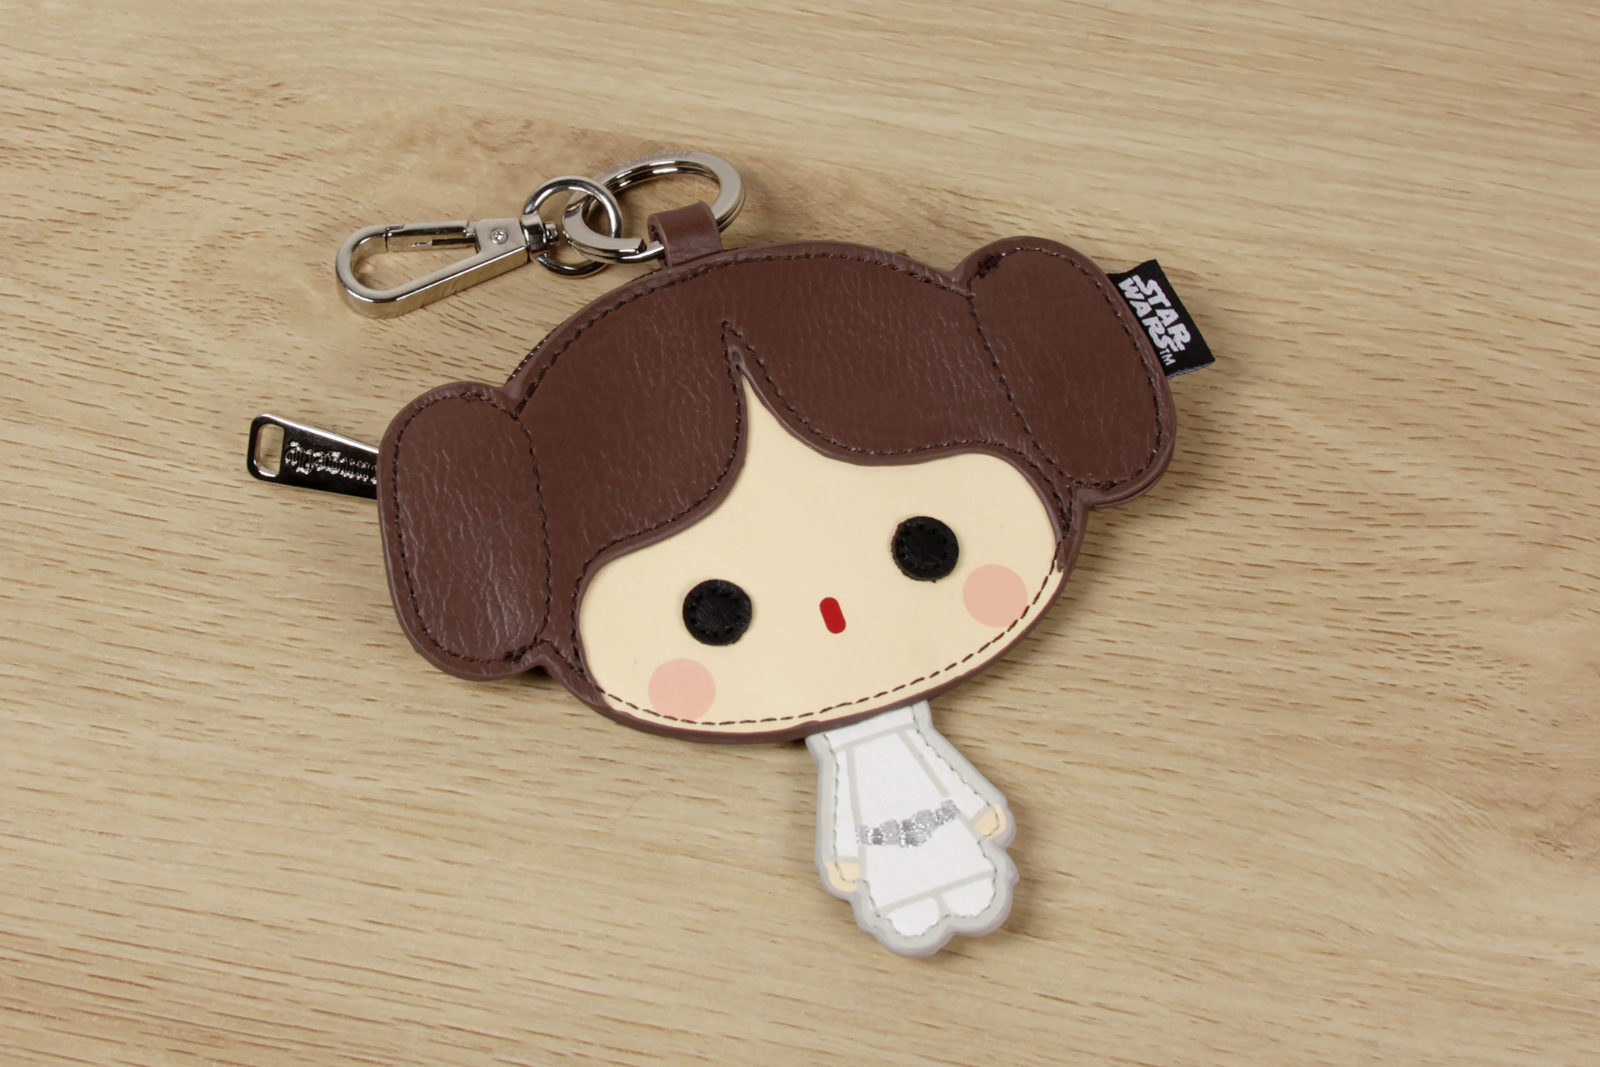 Loungefly x Star Wars Princess Leia Coin Purse